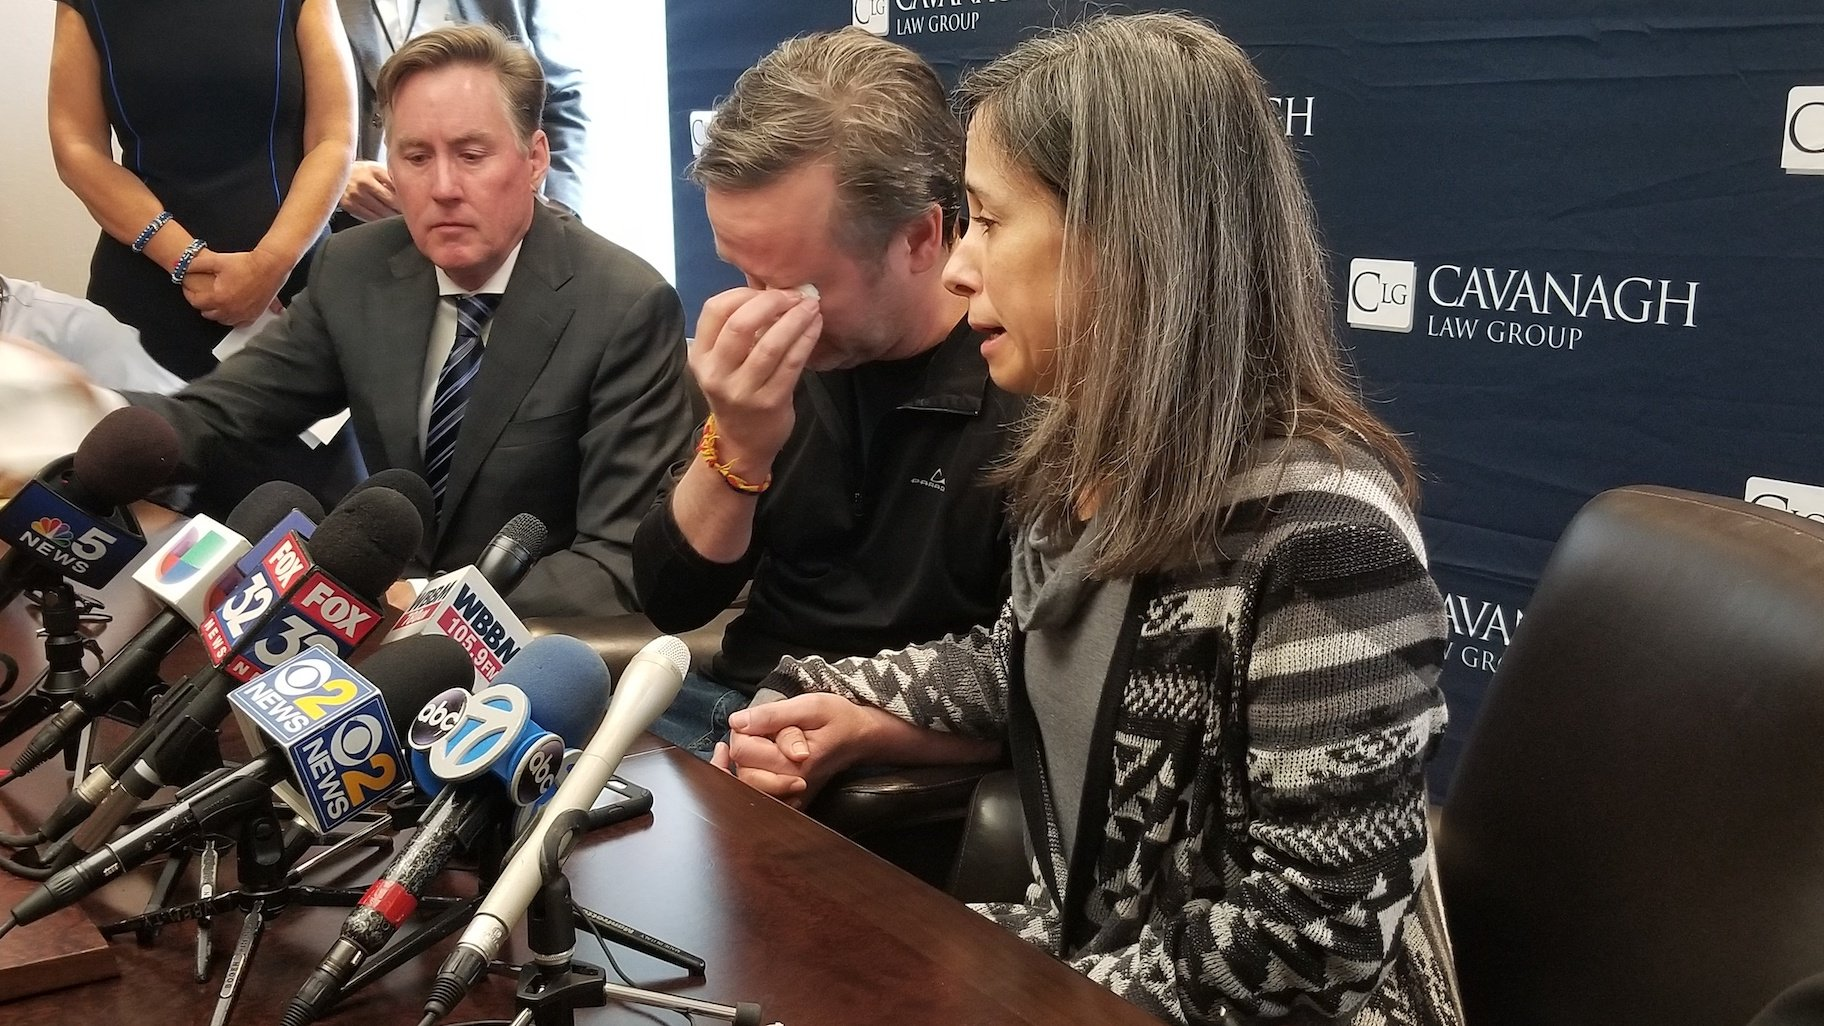 Tom Wilder, center, and Lucia Morales, right, say they're unsure if their son Rylan will ever regain full use of his arm after he was shot last week in an incident involving bank robbers and police. (Matt Masterson / WTTW News)